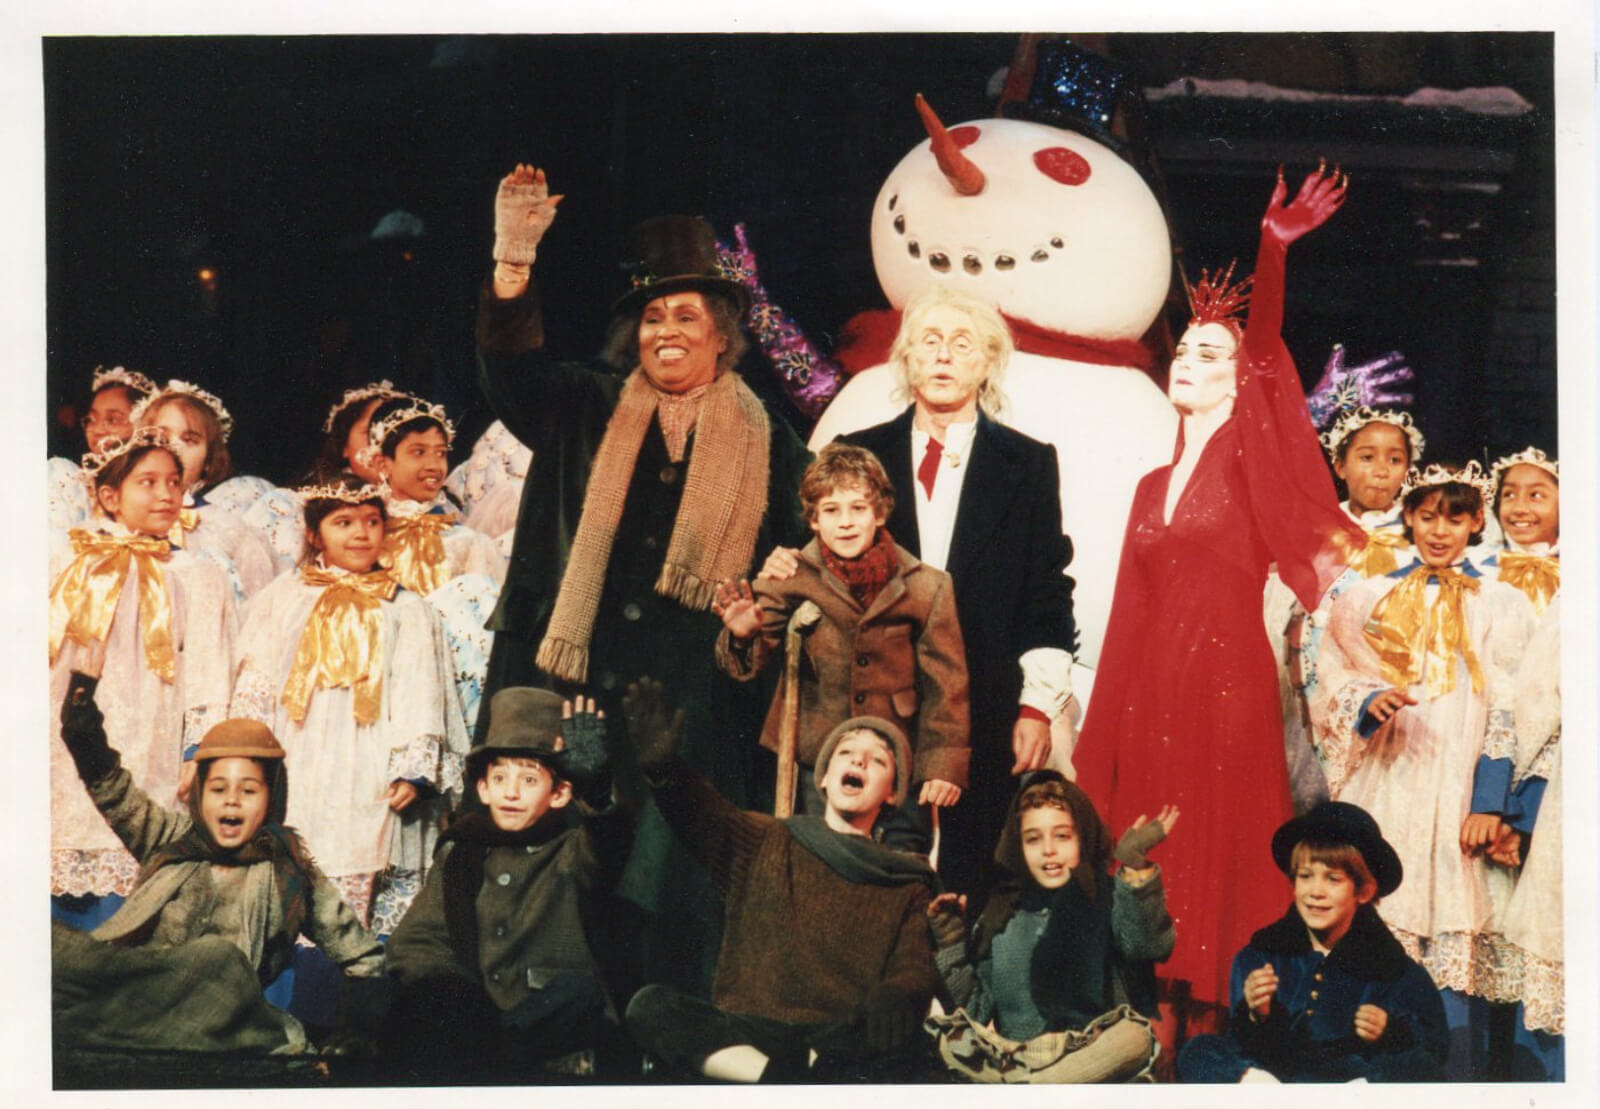 The Ghost of Christmas Present (Roz Ryan), Ebenezer Scrooge (Roger Daltry), The Ghost of Christmas Yet-to-Be (Catherine Batcheller) and company at the Curtain Call of A Christmas Carol. In front of a giant snowman.